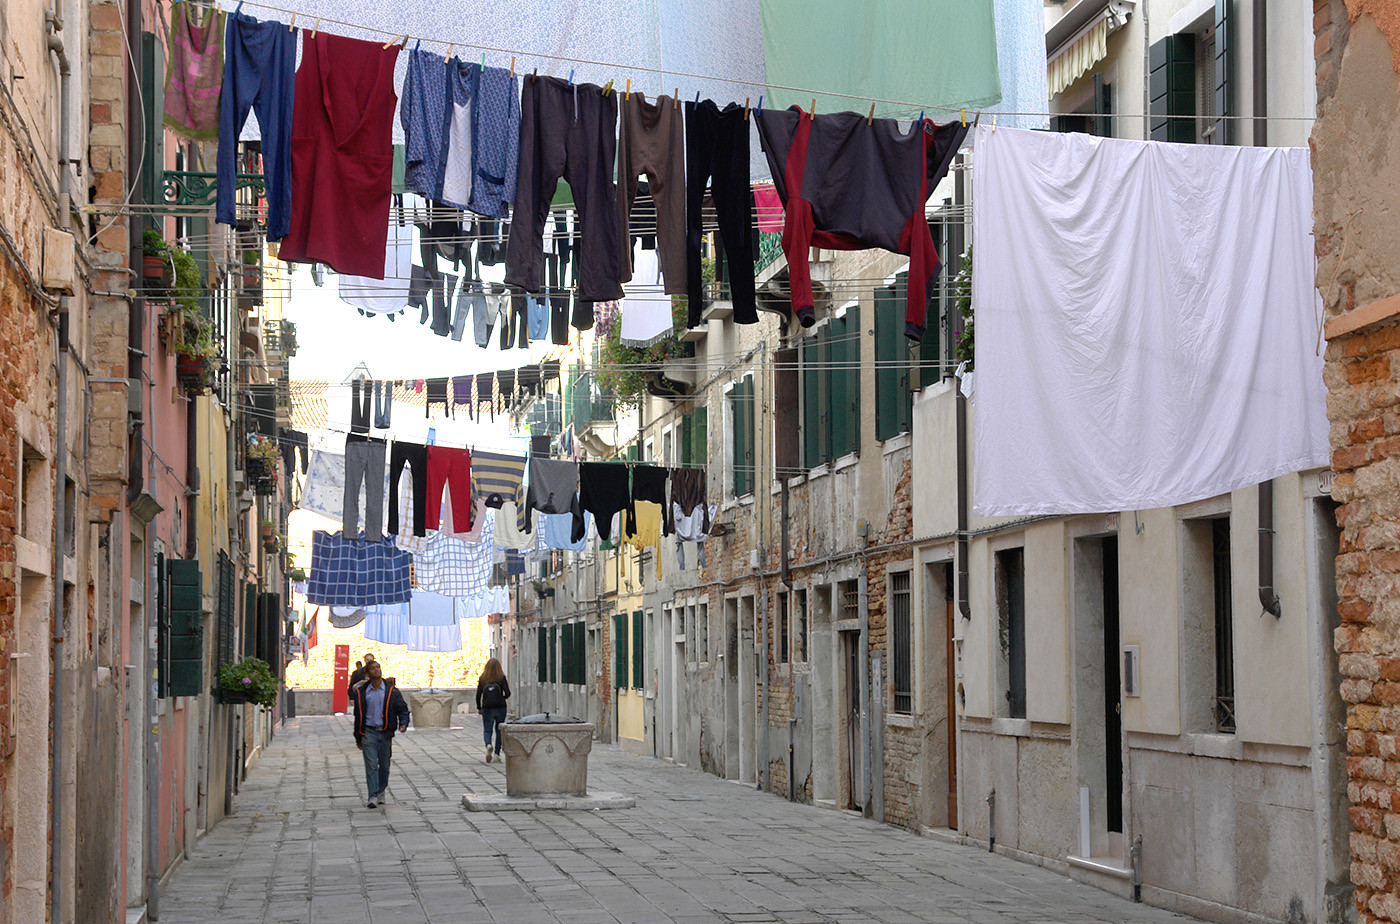 GROUP 1 17 WASHDAY IN VENICE by Brian Whiston